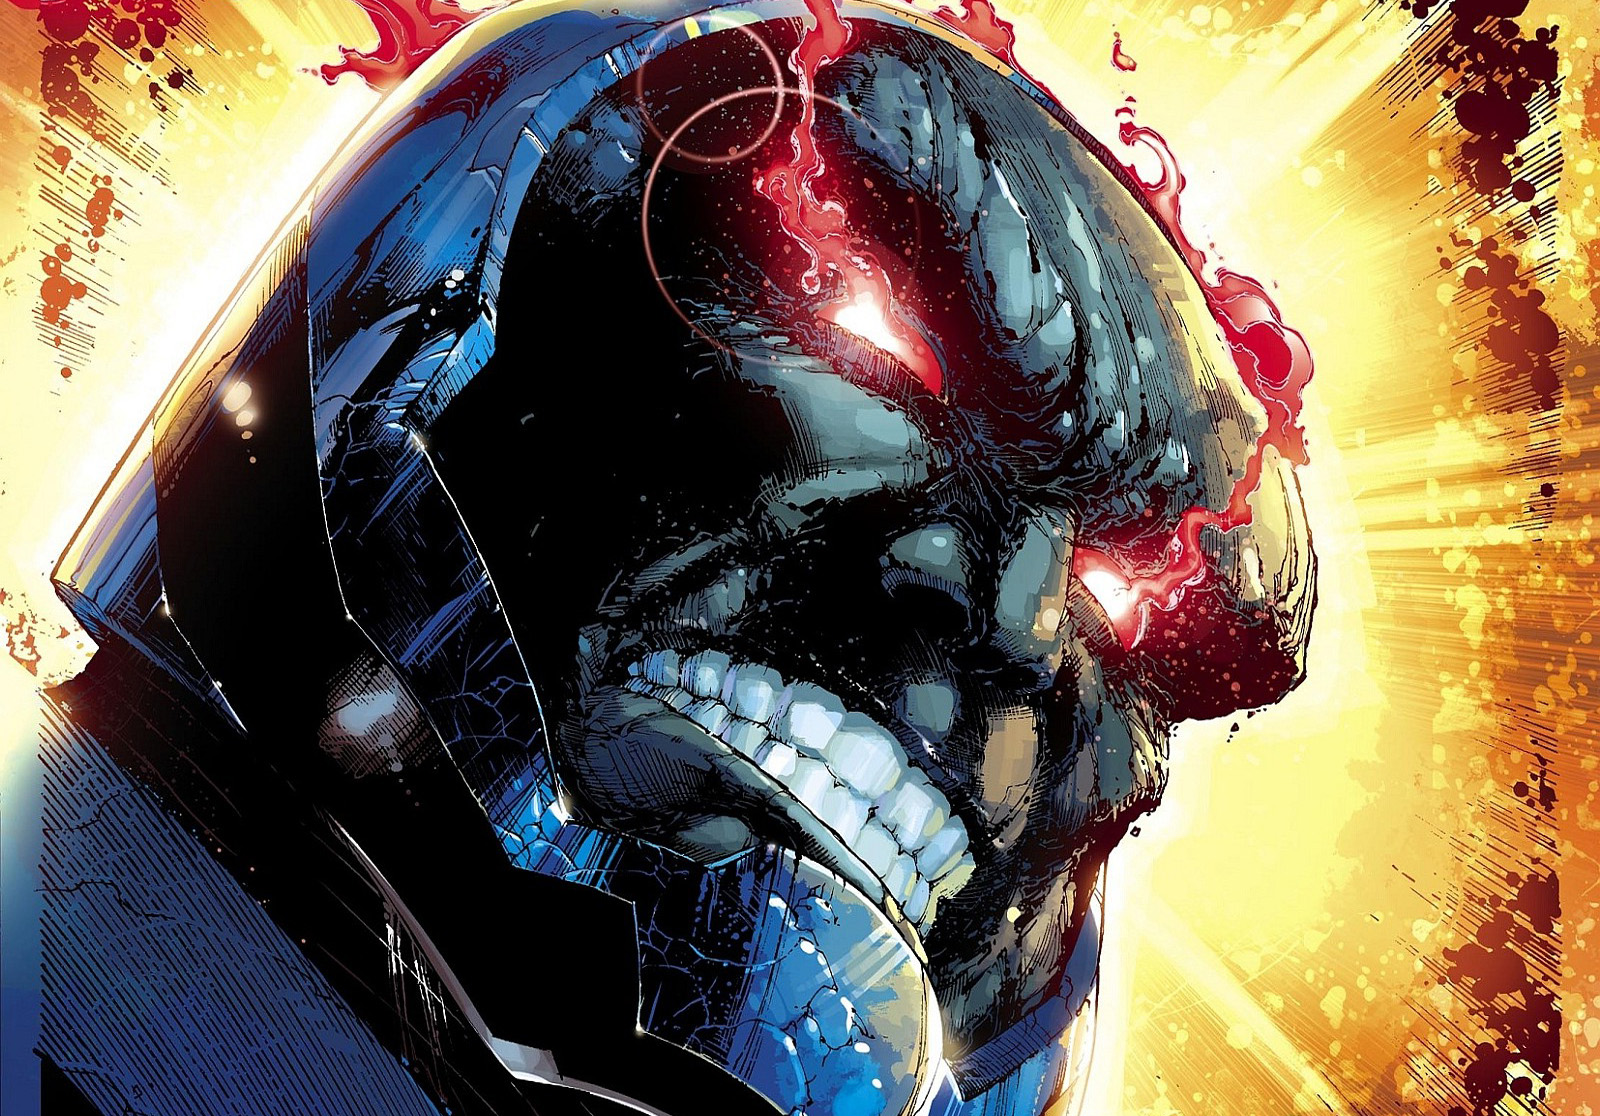 Darkseid Wallpapers PC 3XA7O4F   4USkY 1600x1116